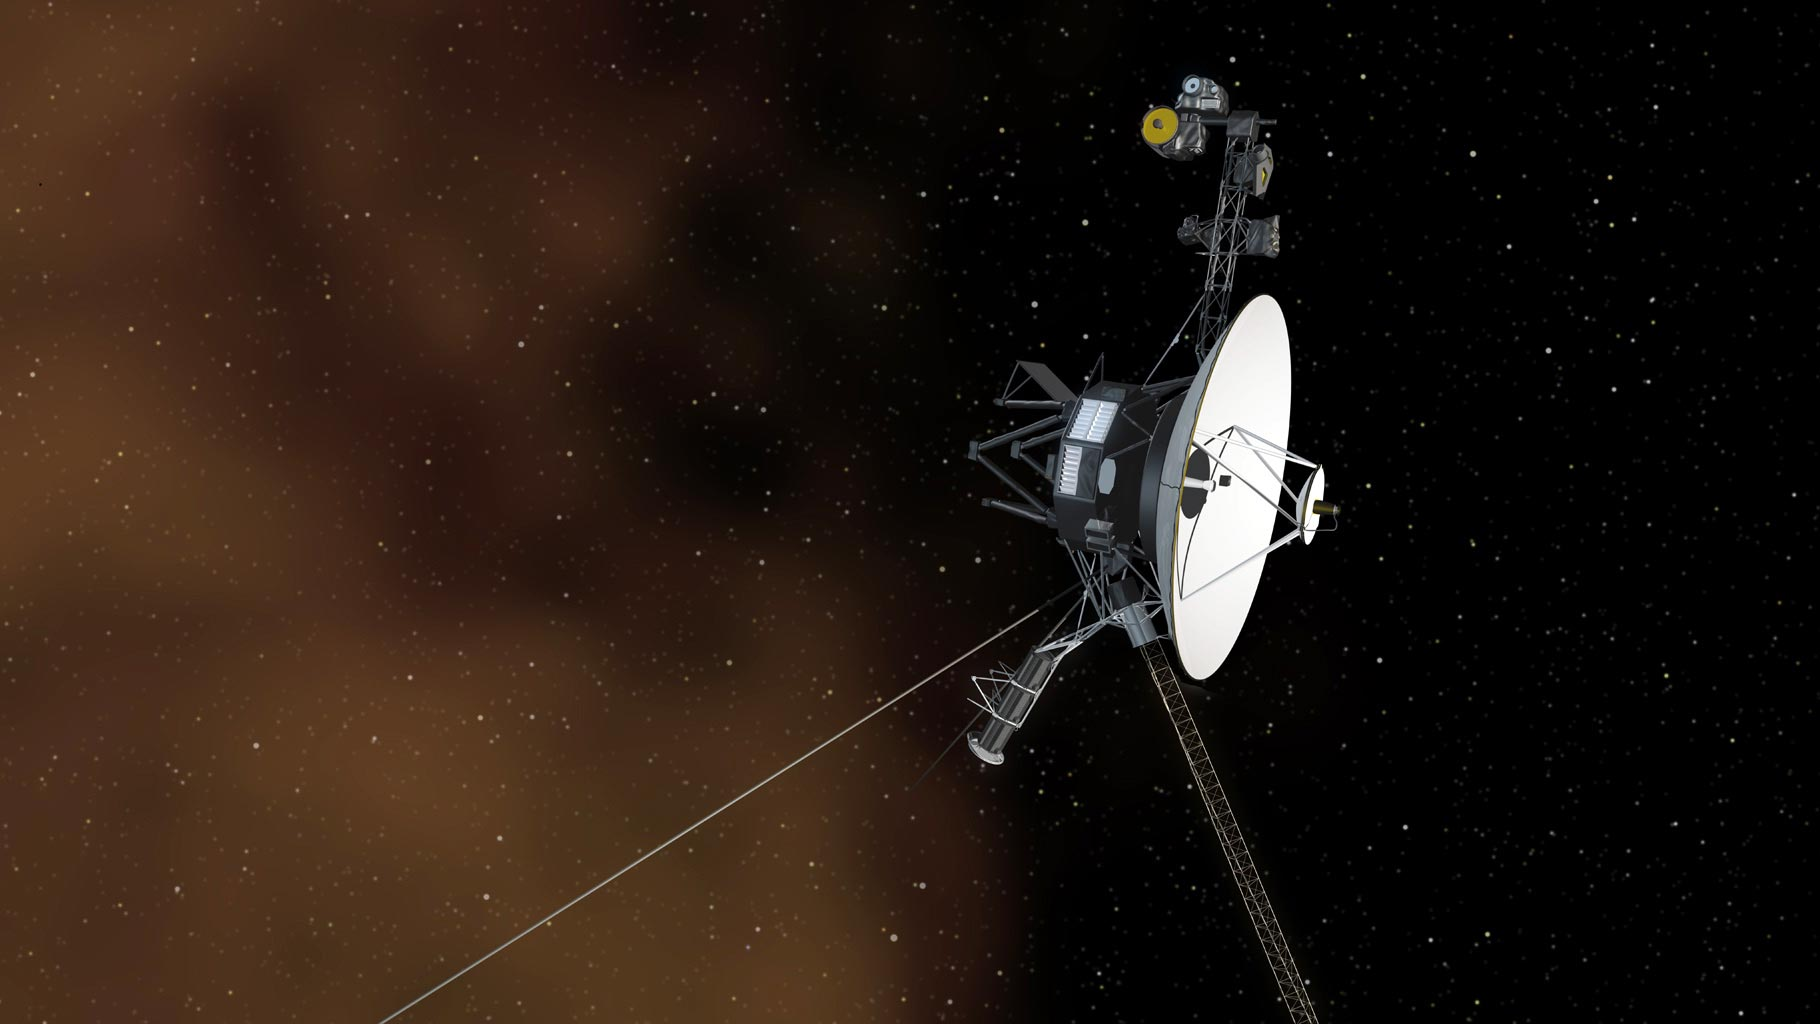 Voyager 2 Fault Protection Triggered - Engineers Working to Restore Normal Operations